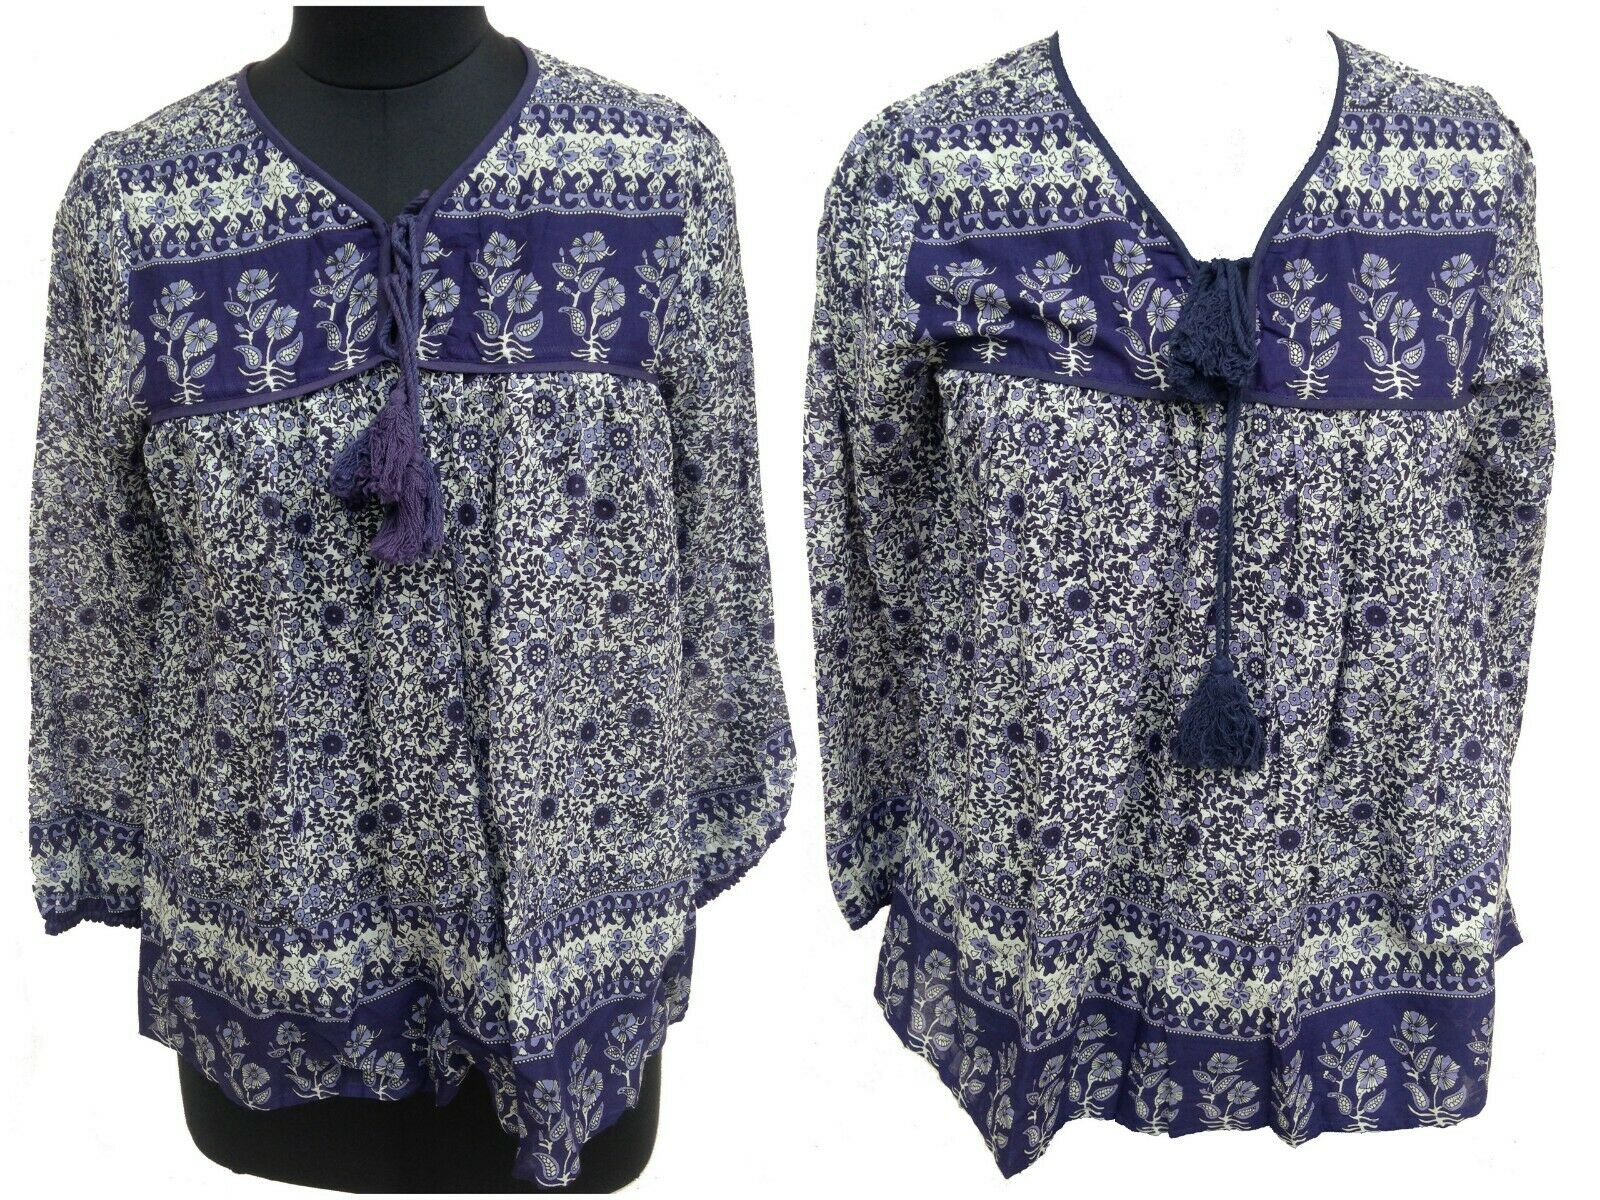 Cotton new bluee floral Bohemian gypsy blouse top women's   Plus size available